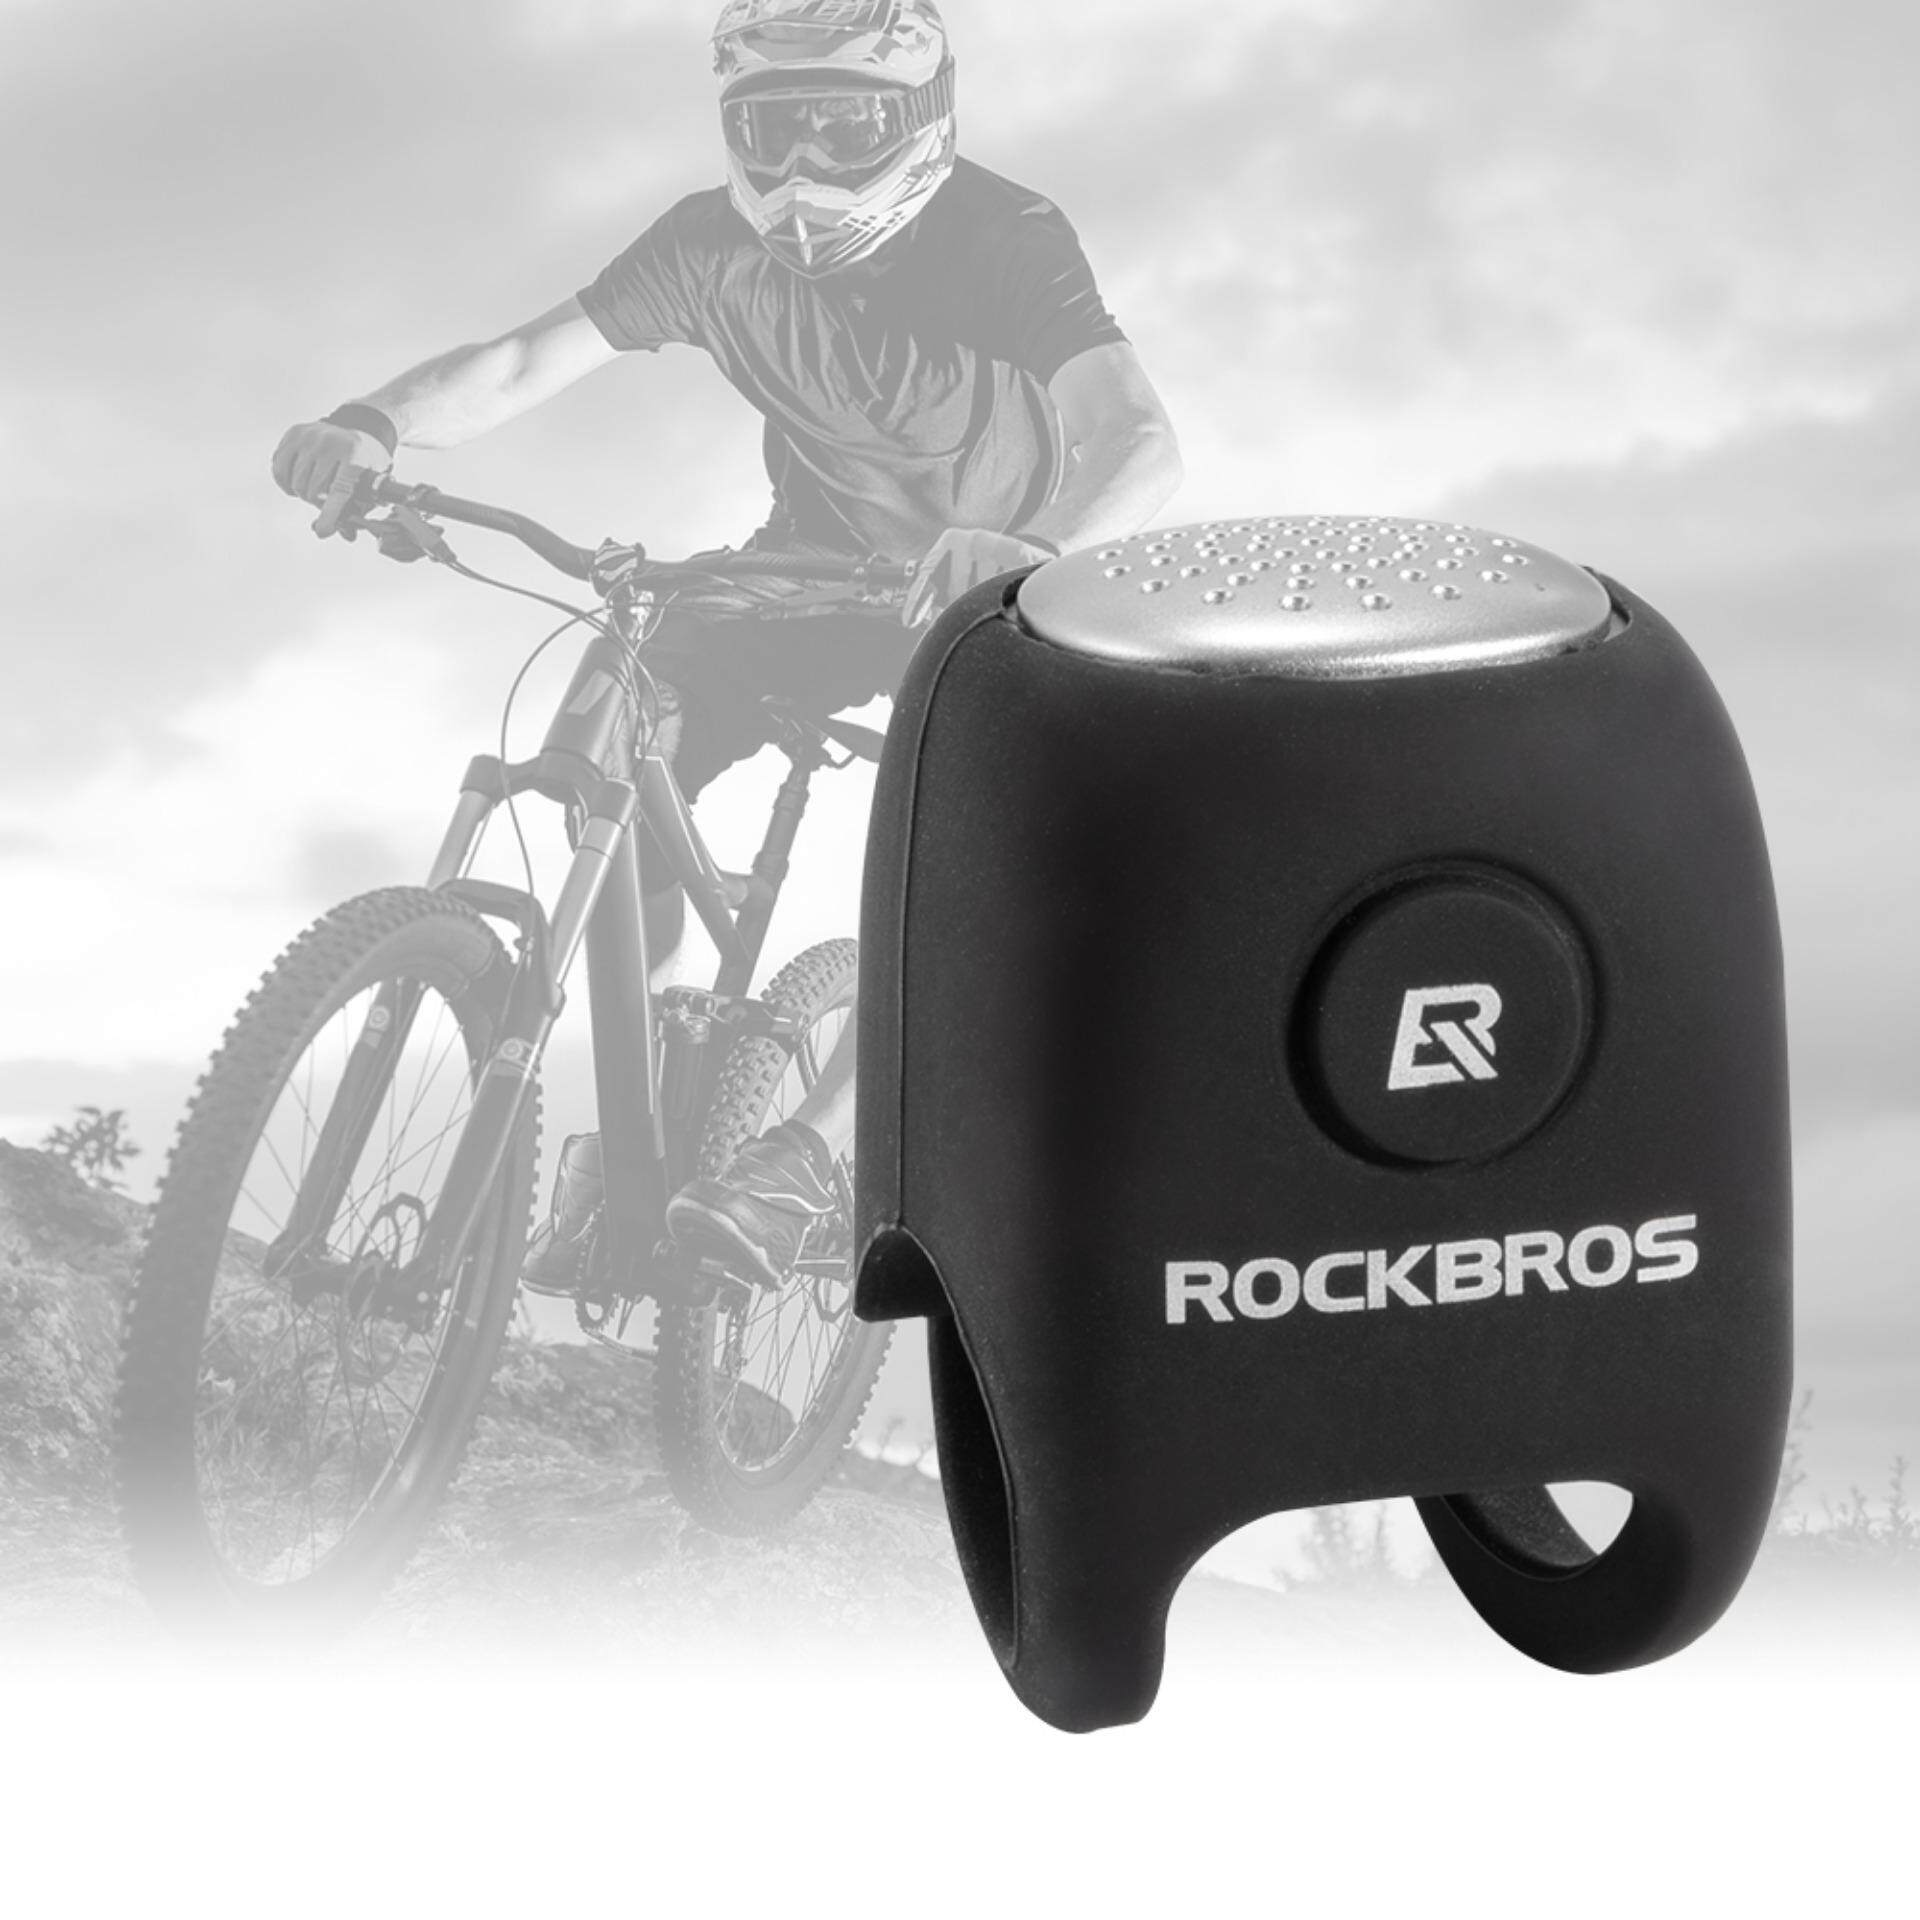 RockBros Bike Bicycle Handlebar Ring Bell Safe Cycling Alarm Loud Sound กริ่งและแตรจักรยาน